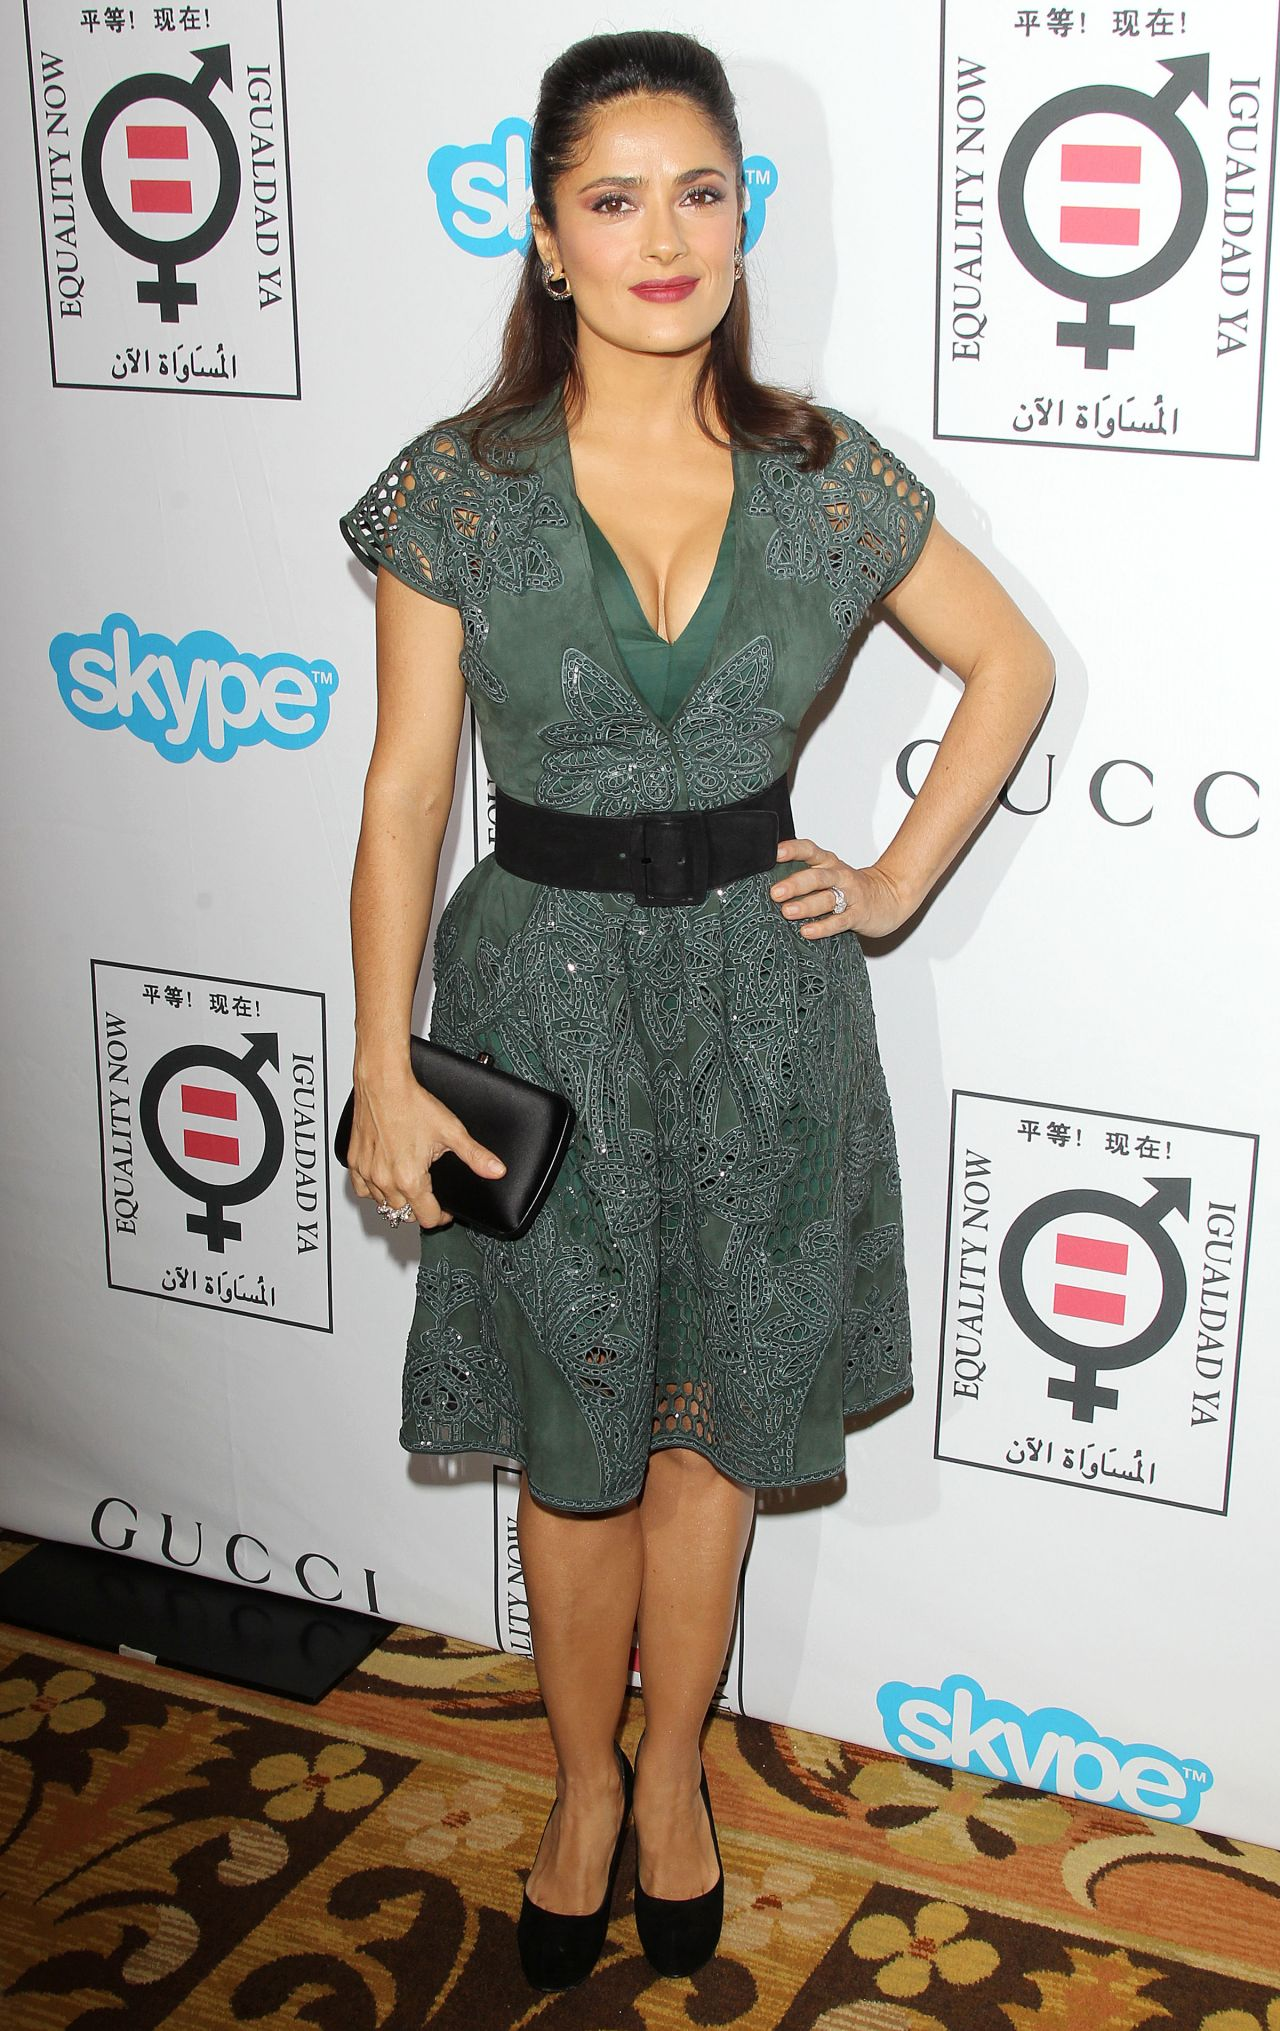 Salma Hayek - Equality Nows Make Equality Reality Event -3244